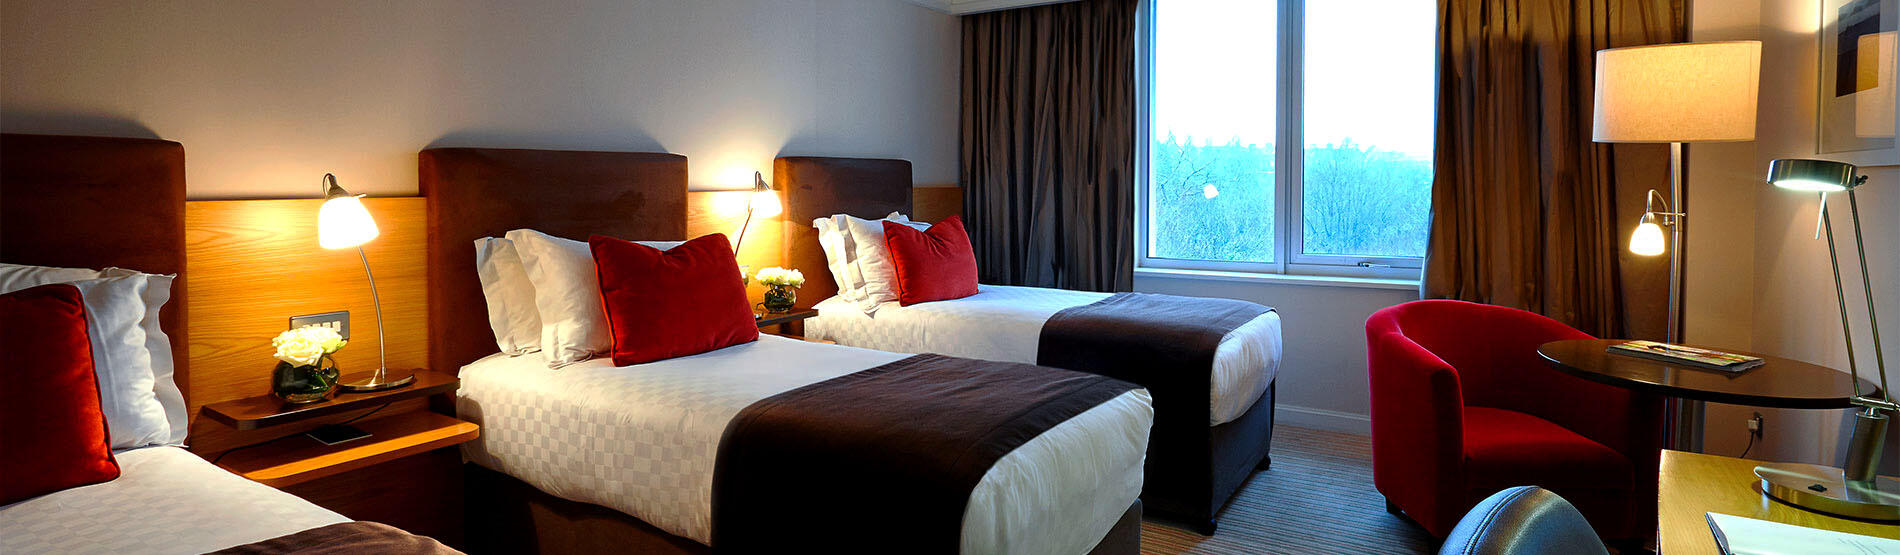 Superior Room with 3 single beds at The River Lee hotel in Cork